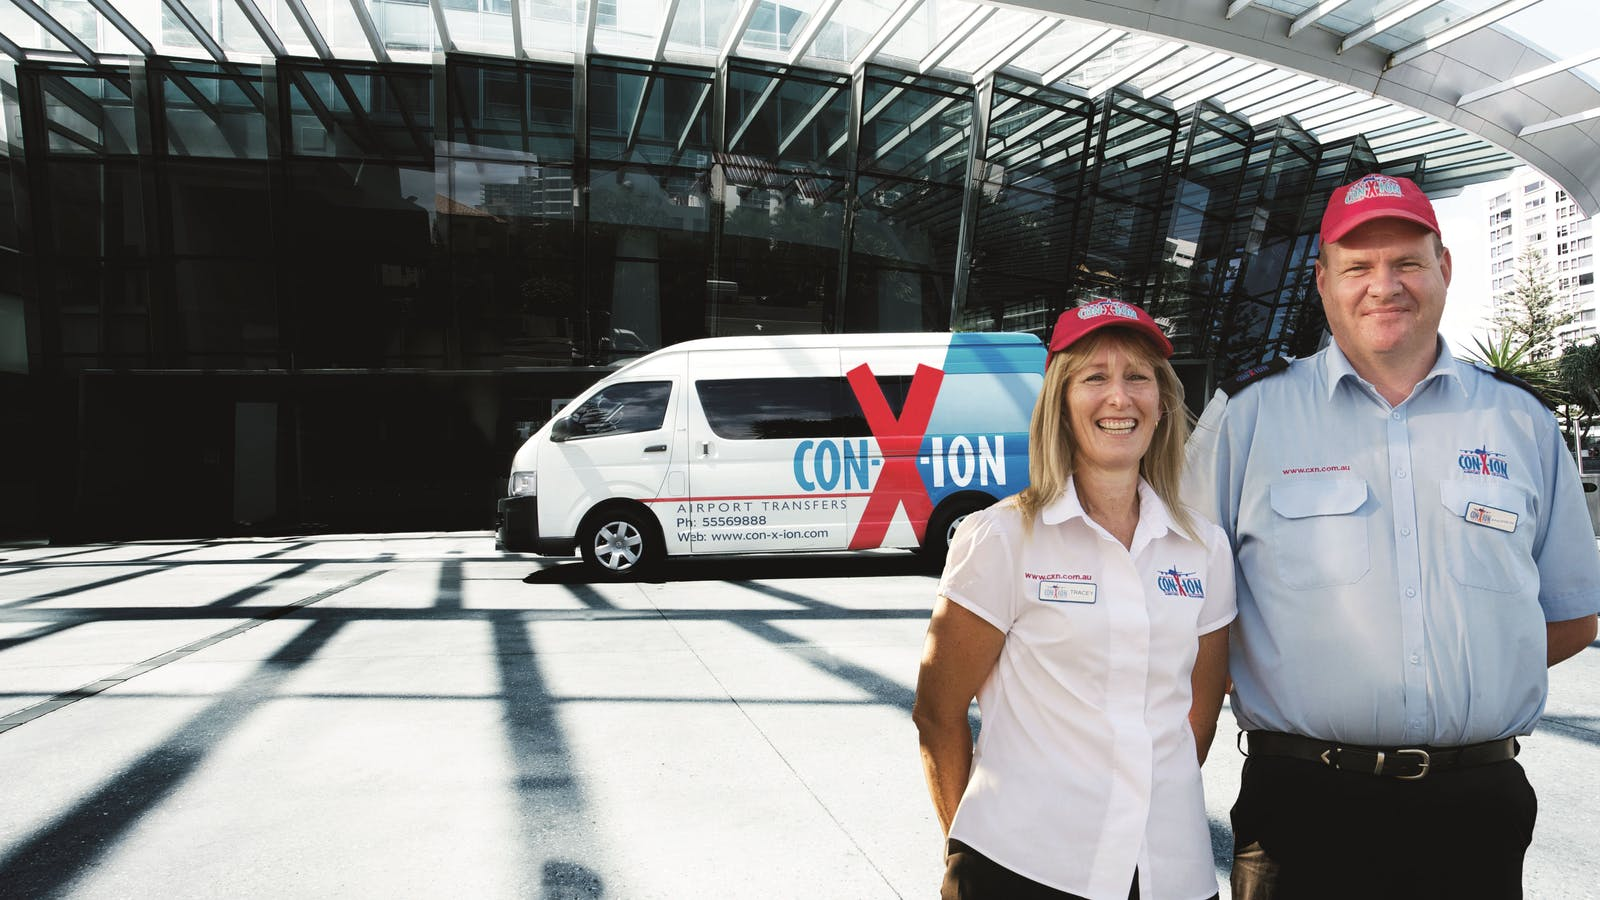 Con-X-ion Airport Transfers Brisbane